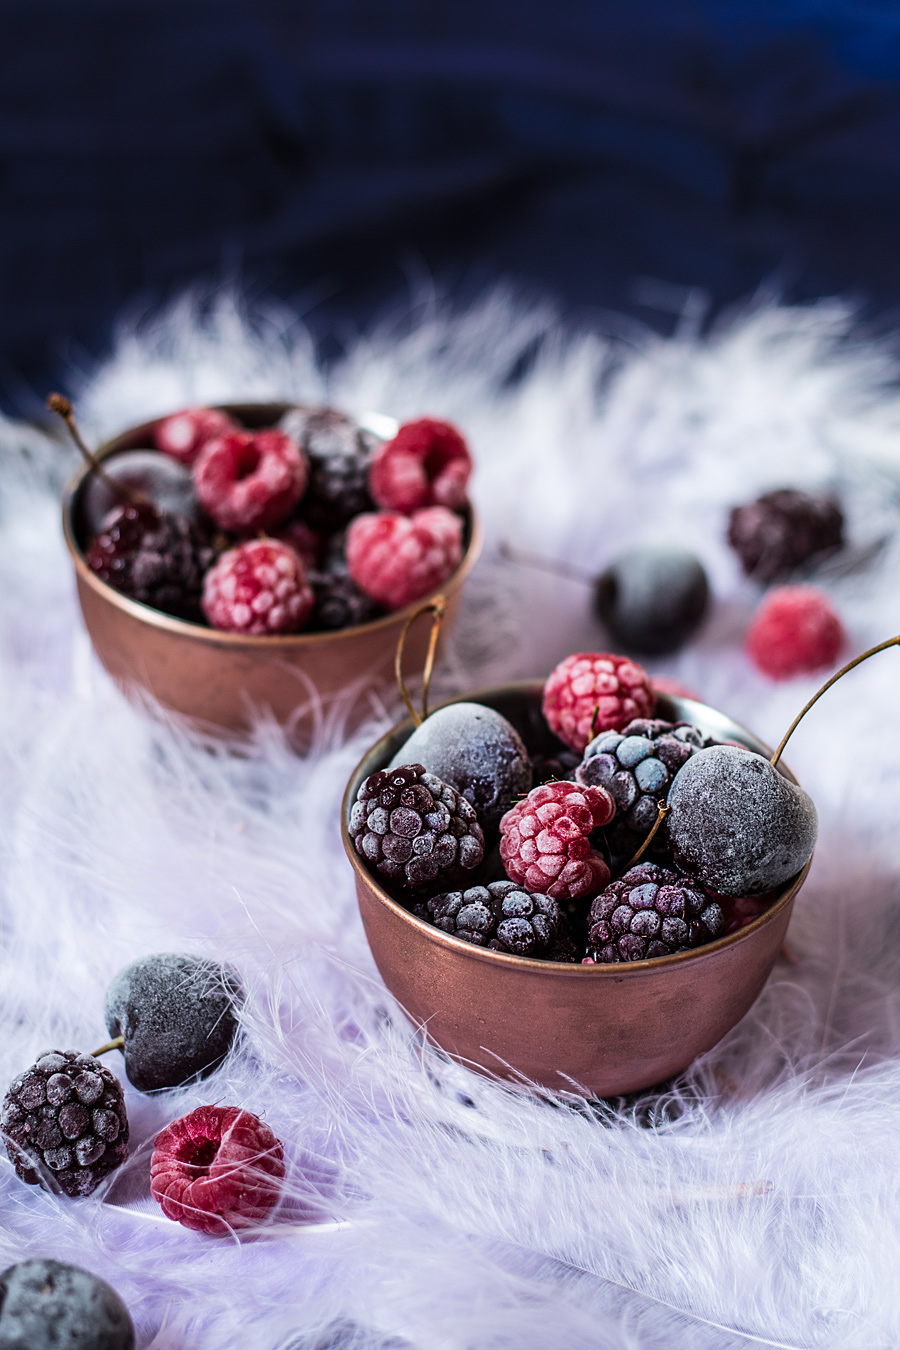 Blackberry frozen yoghurt cake | Lau Sunday cooks #foodphotography #foodstyling